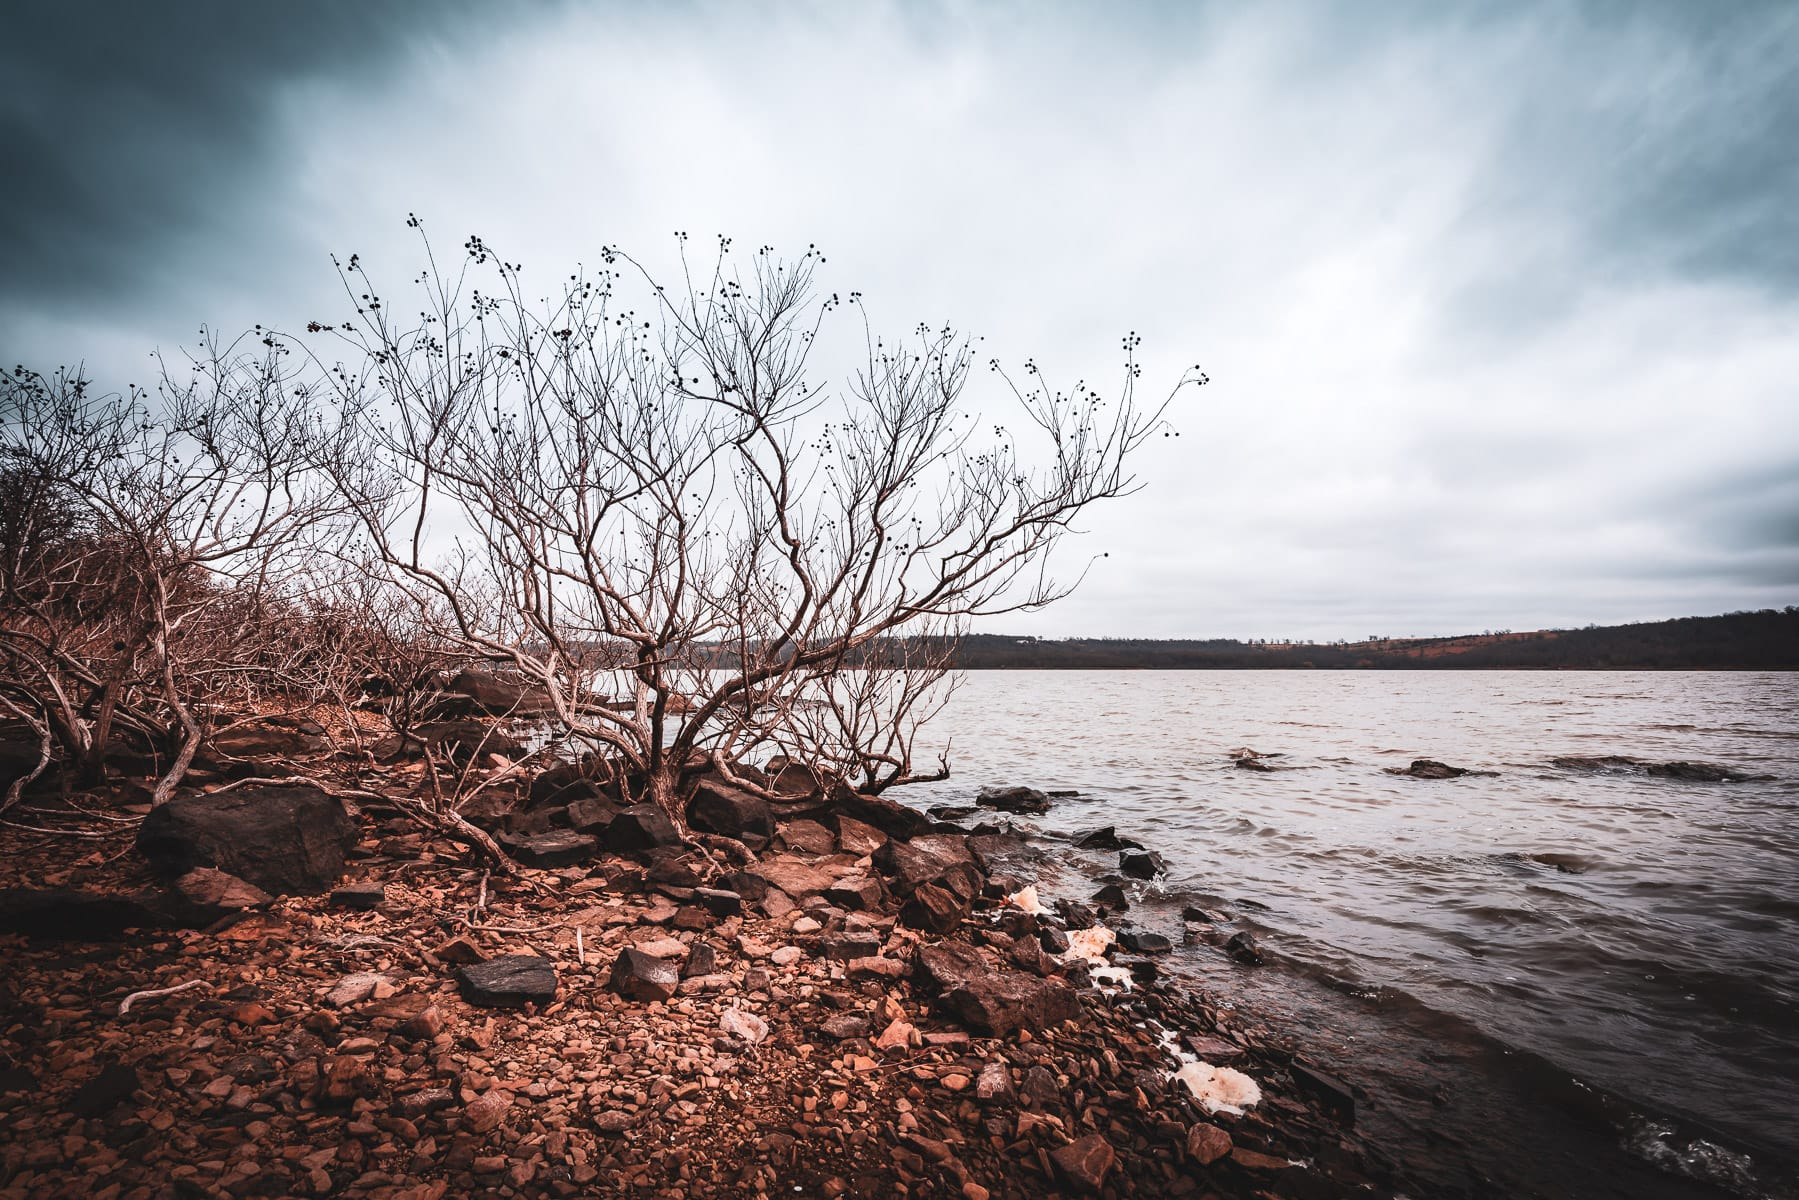 The rocky, wintry shore of Lake Eufaula at Arrowhead State Park, Oklahoma